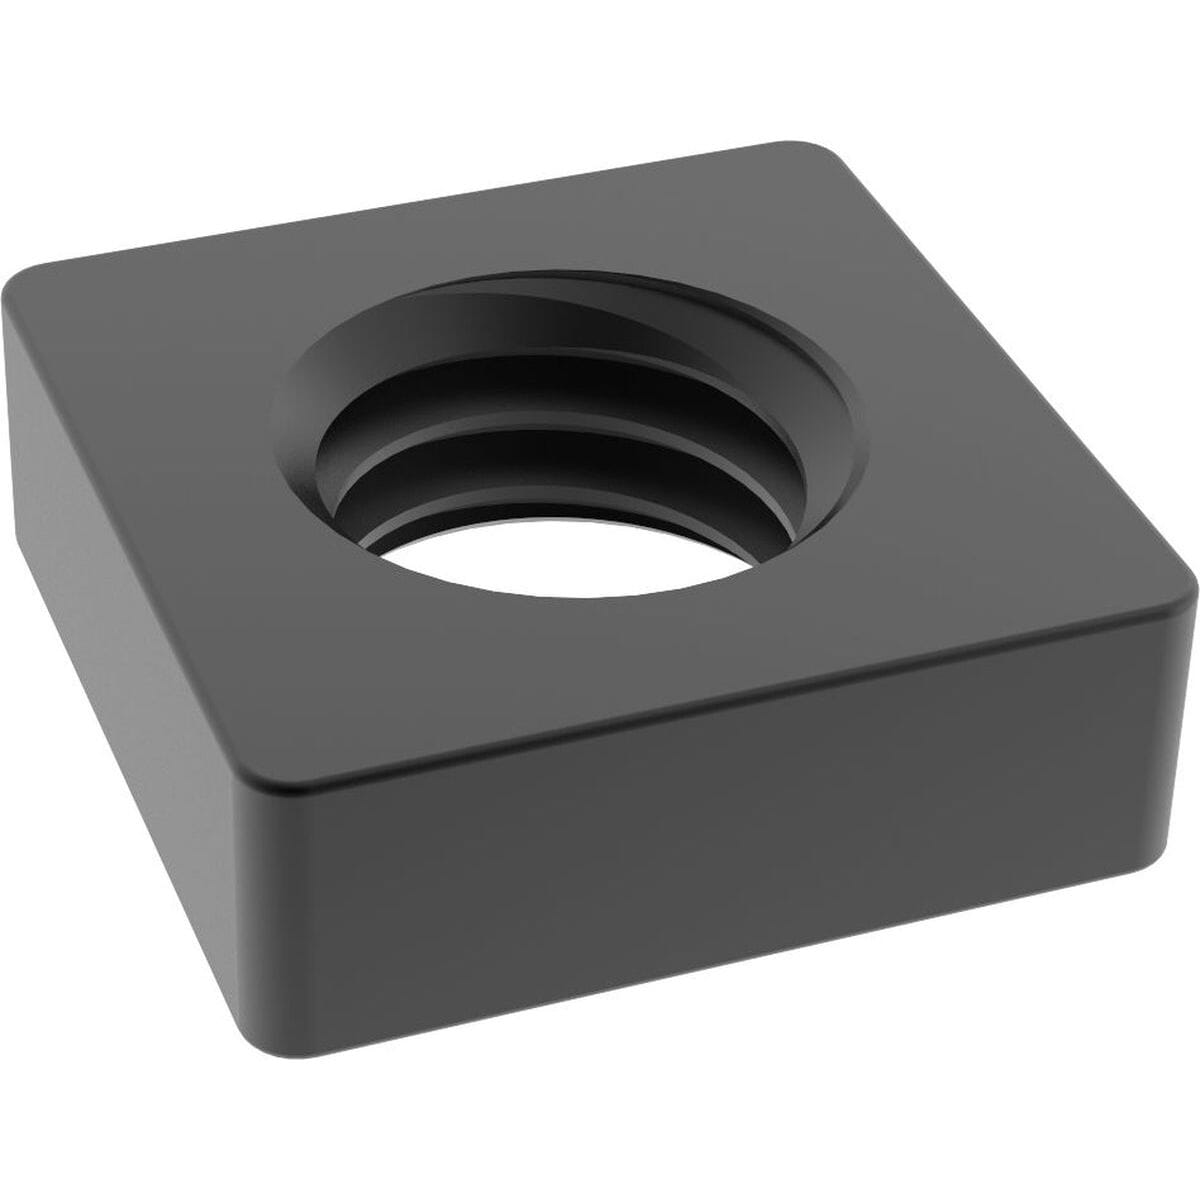 M3 Flat Square Nuts (DIN 562) - Black Marine Stainless Steel (A4)